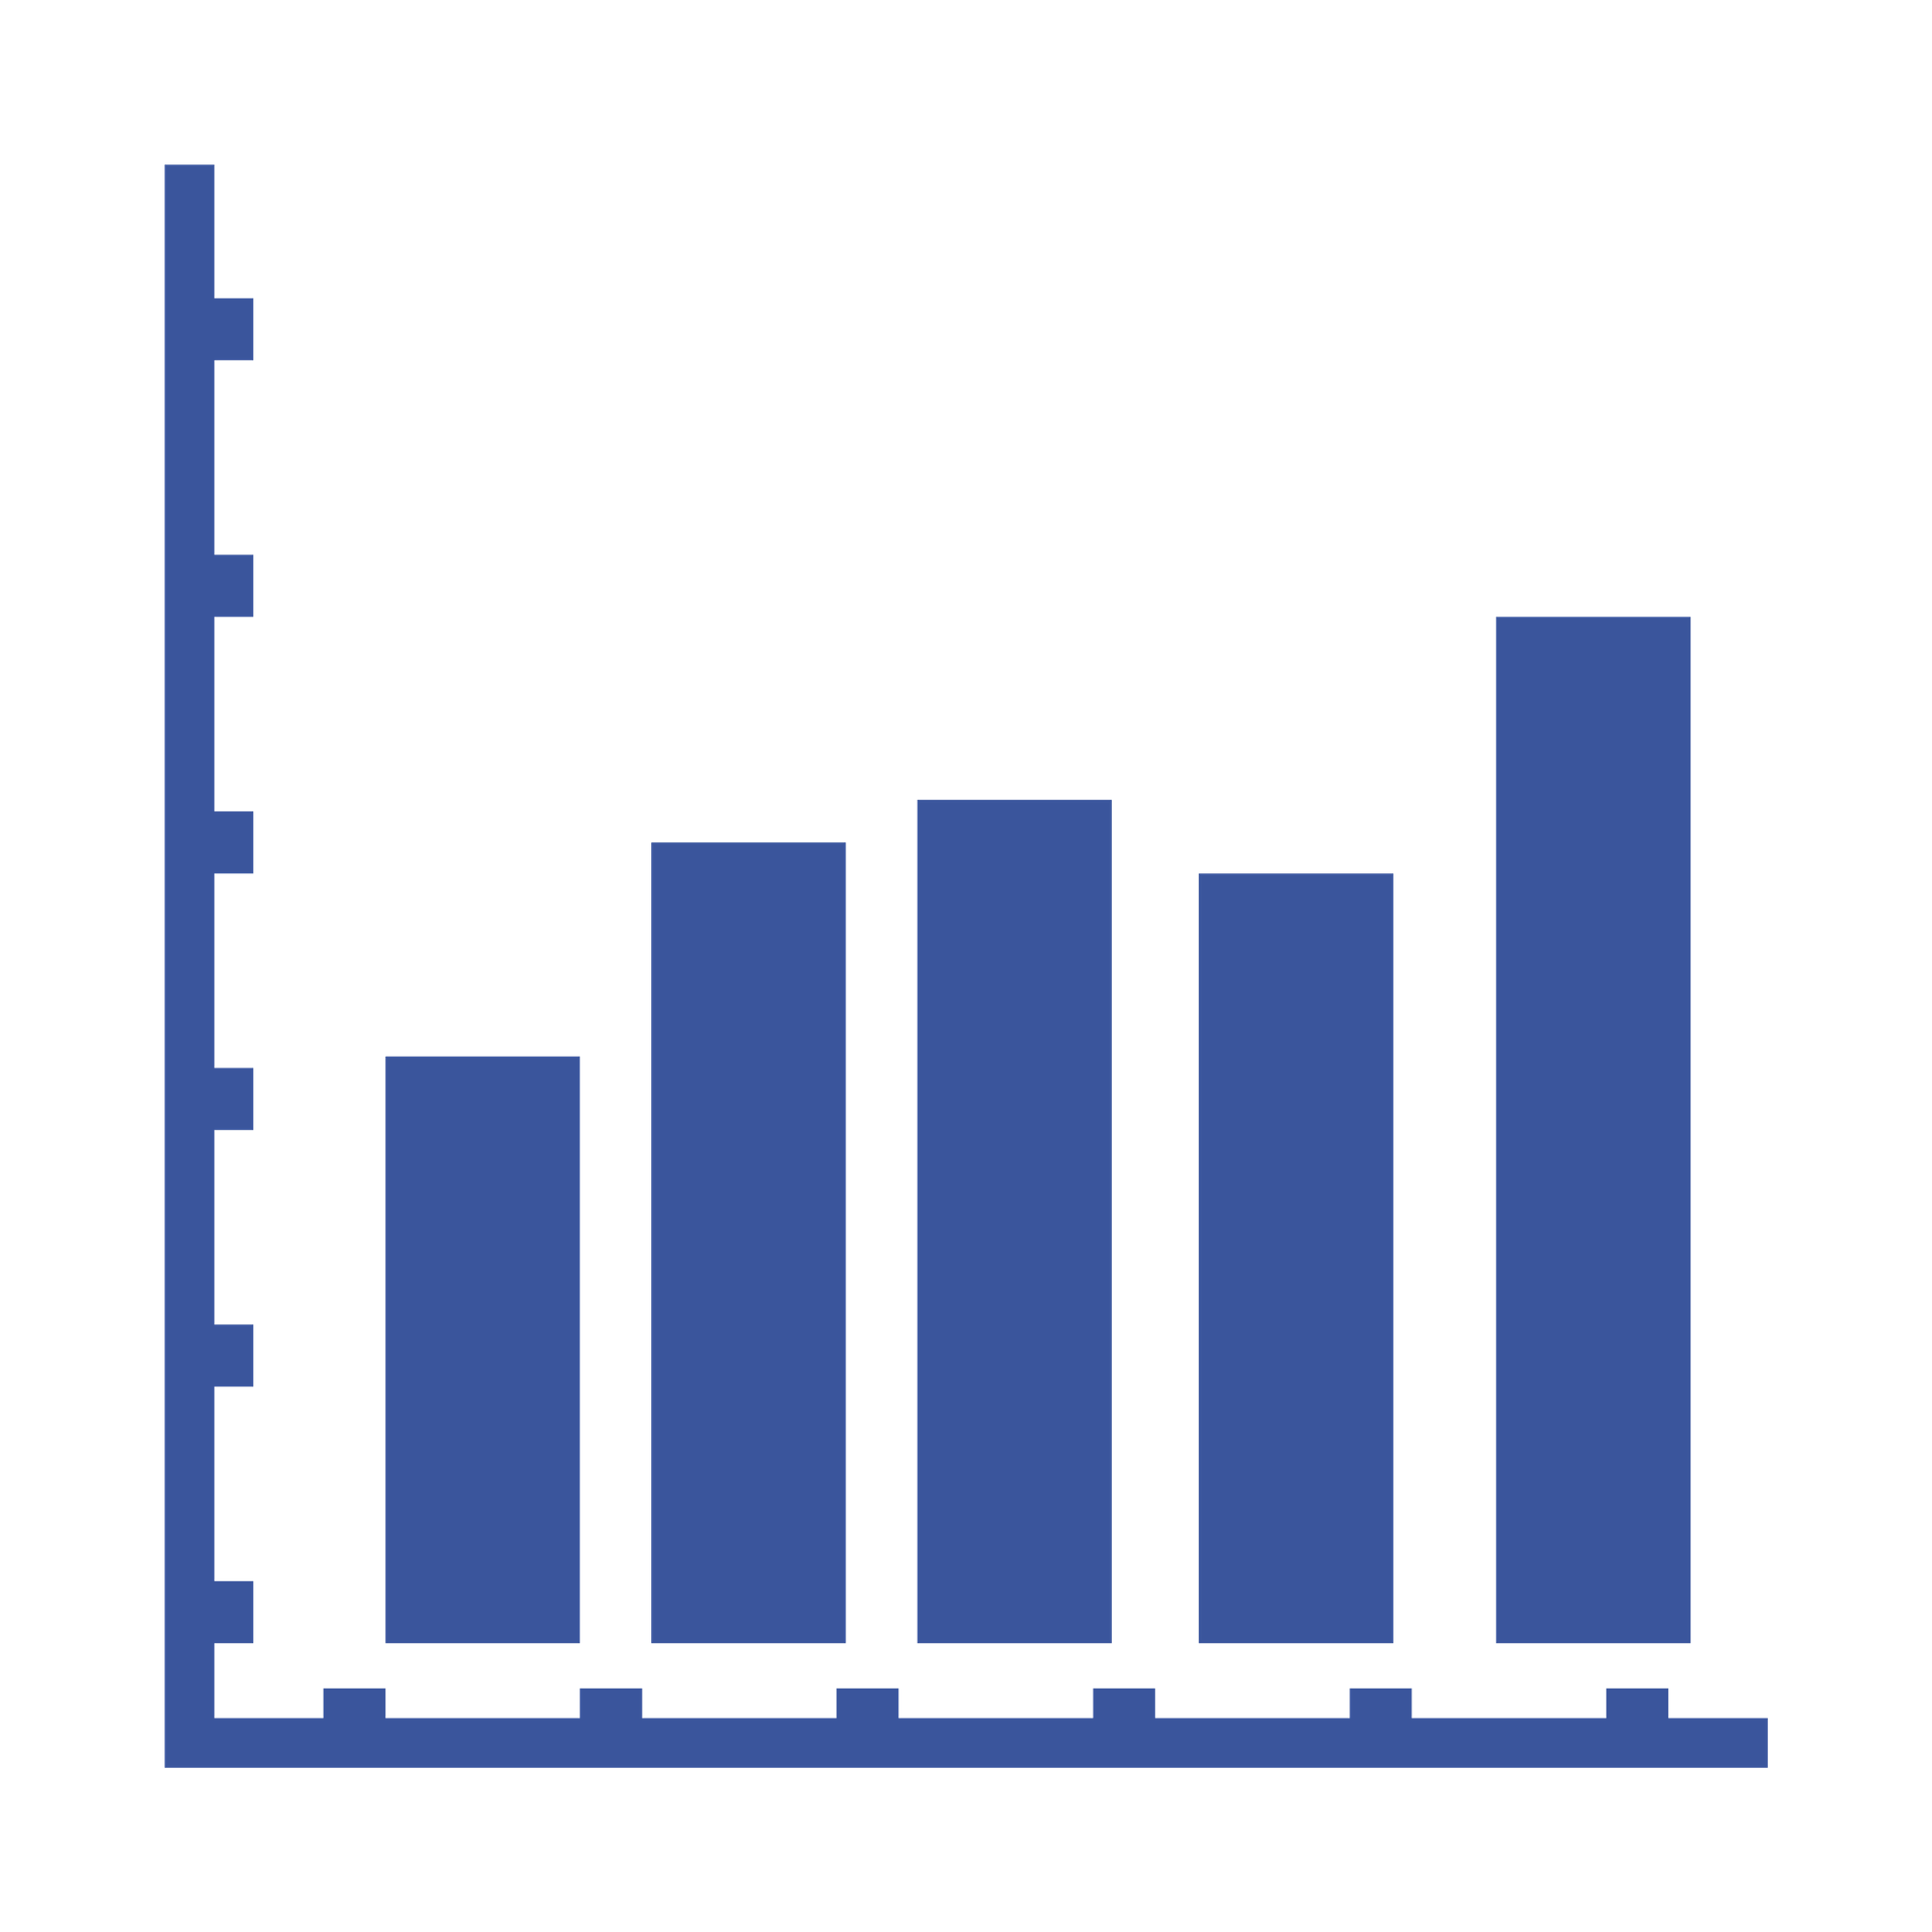 data_collection_analysis_icon.png